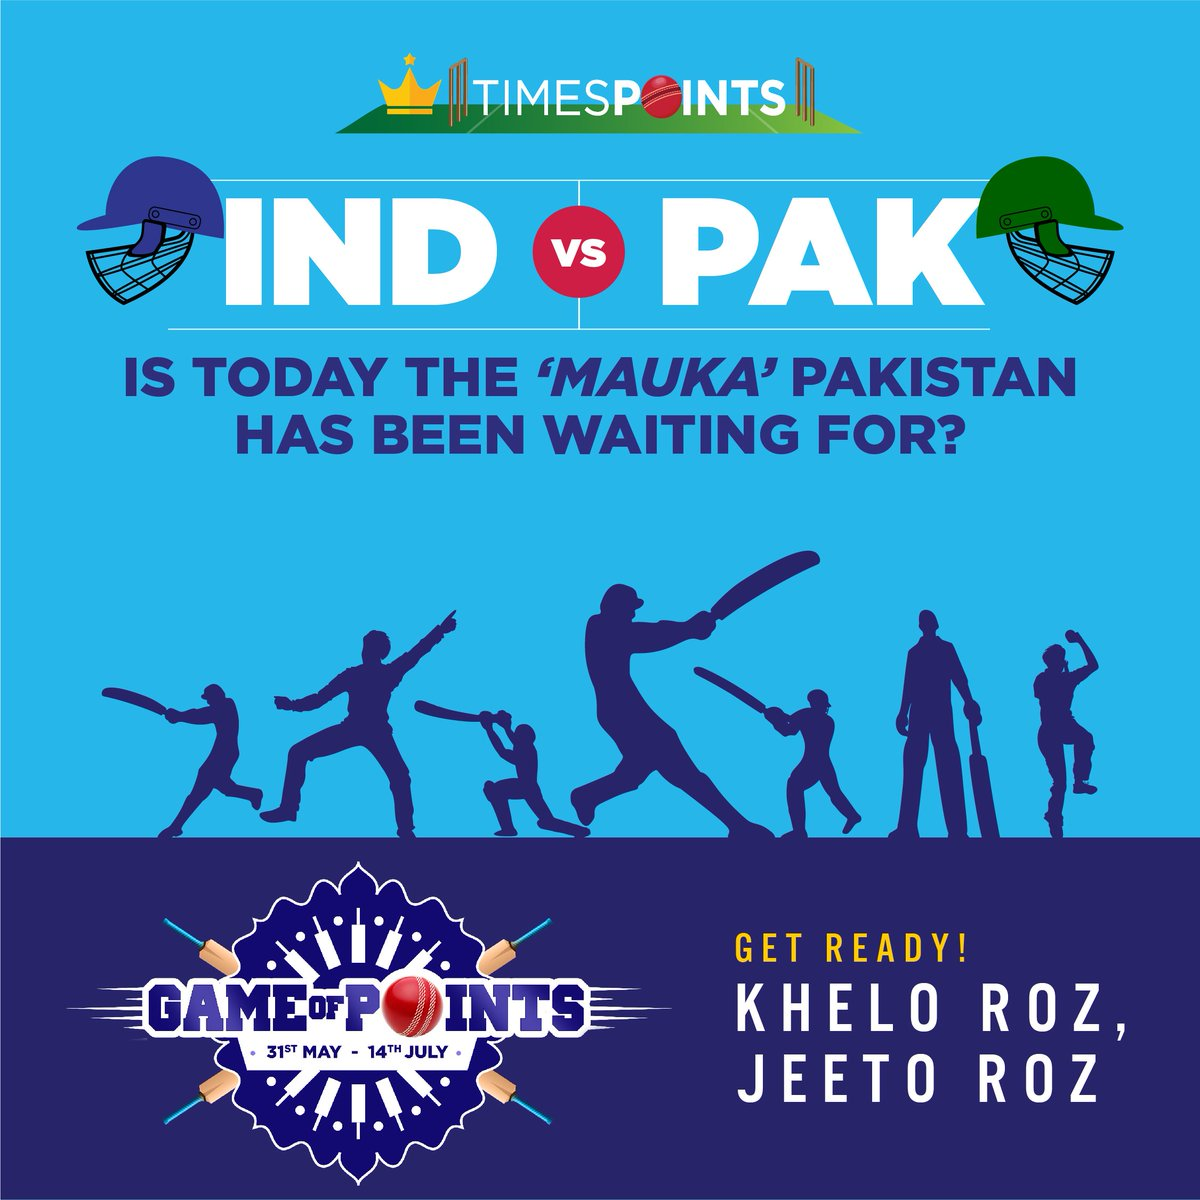 The Boys in Blue clash with the Green Army. Go bit.ly/2WIhMcq to know how to enroll. Ab khelo roz, jeeto roz. @Timesinternet @TataCLiQ #iccworldcup2019 #CWC19 #TataCLiq #TeamIndia #INDvPAK #WeHaveWeWill #GameOfPoints